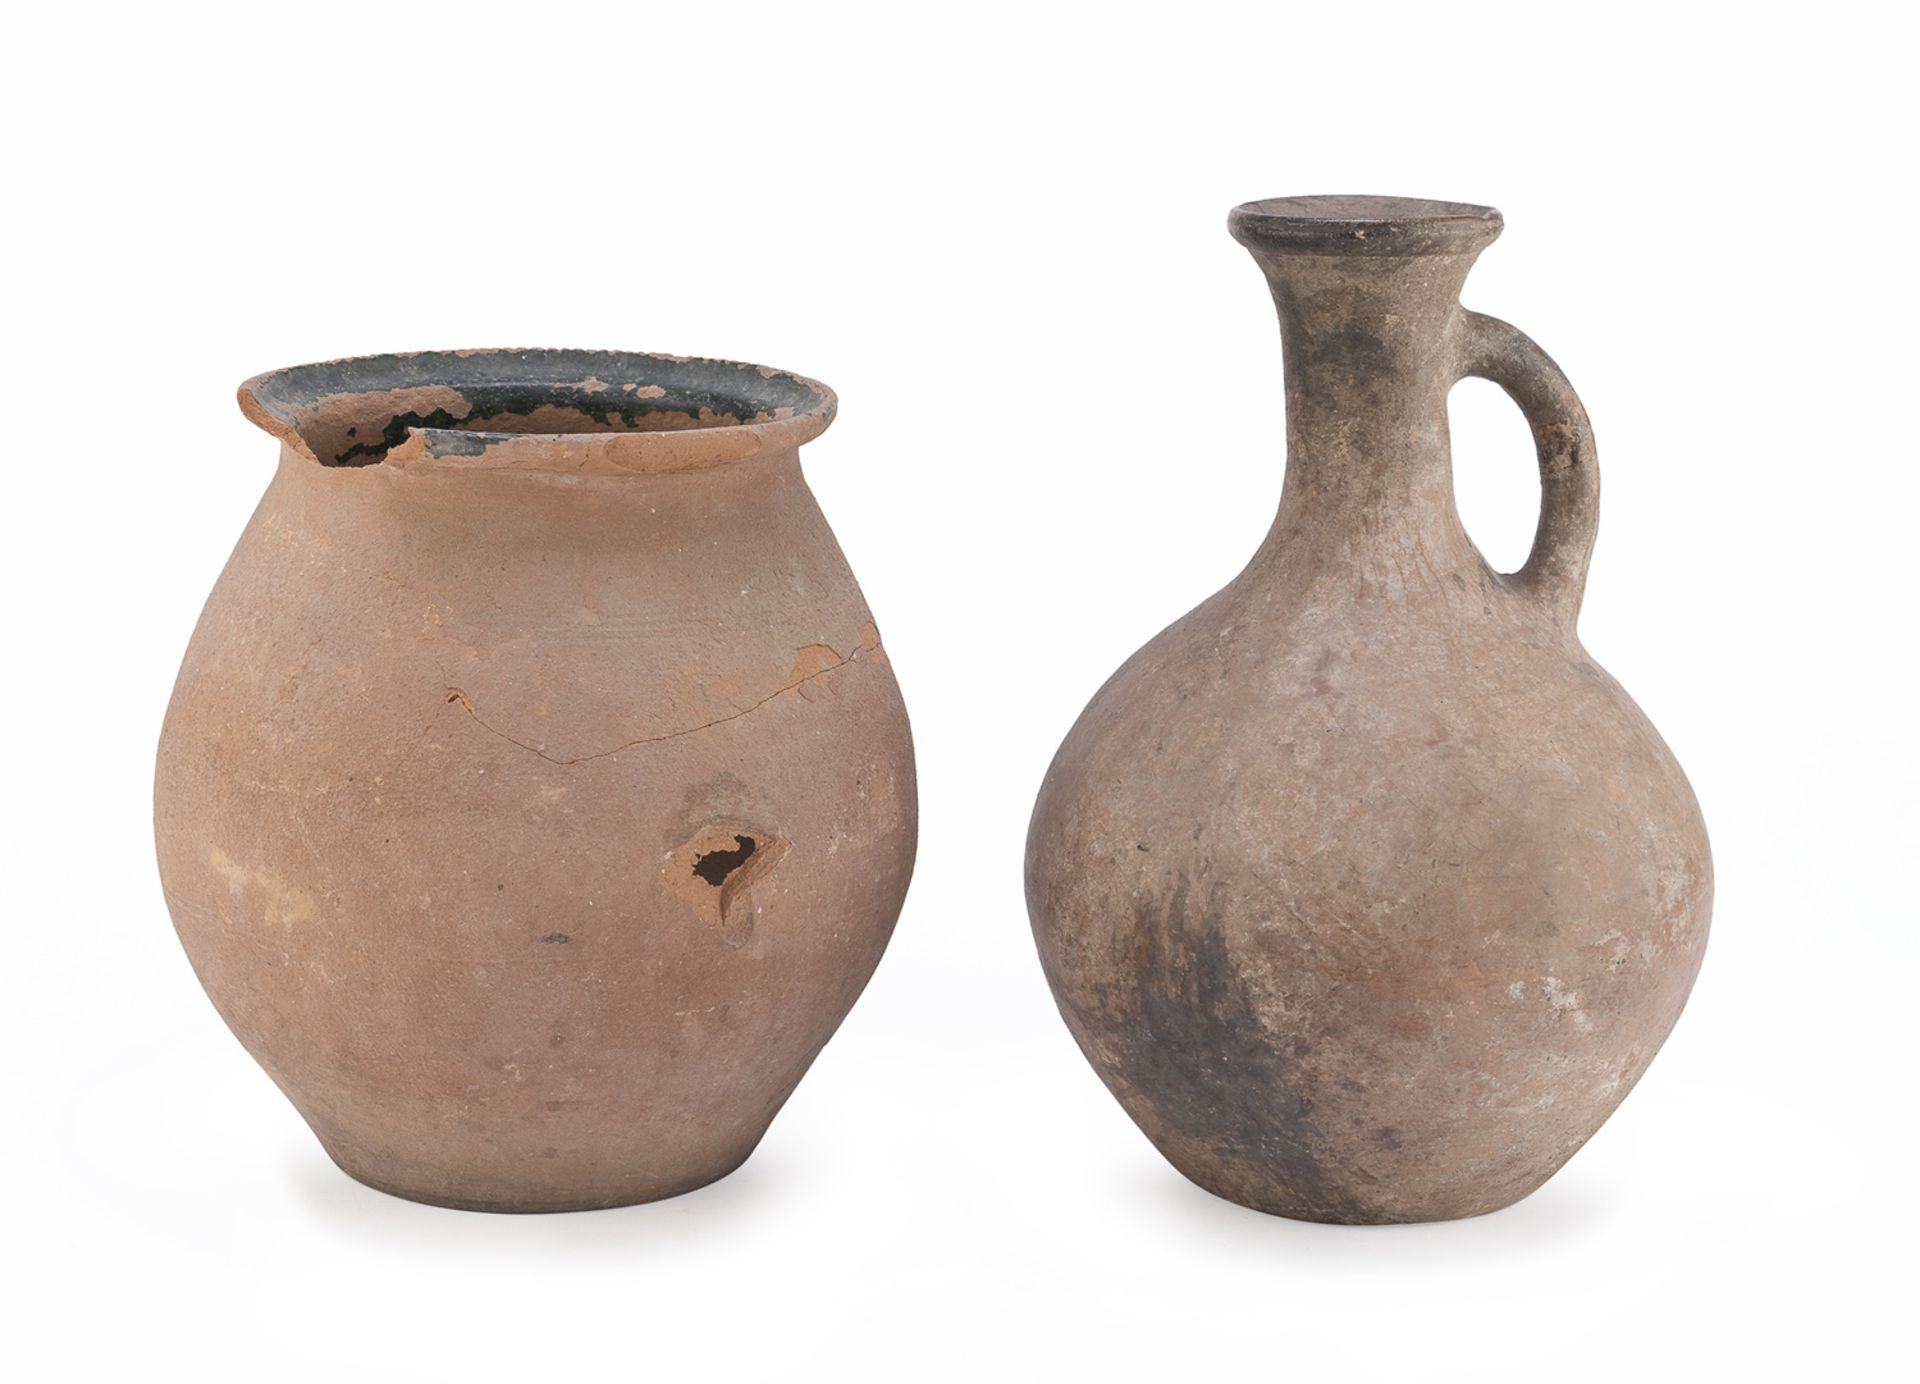 TERRACOTTA JUG AND JAR EARLY 20TH CENTURY